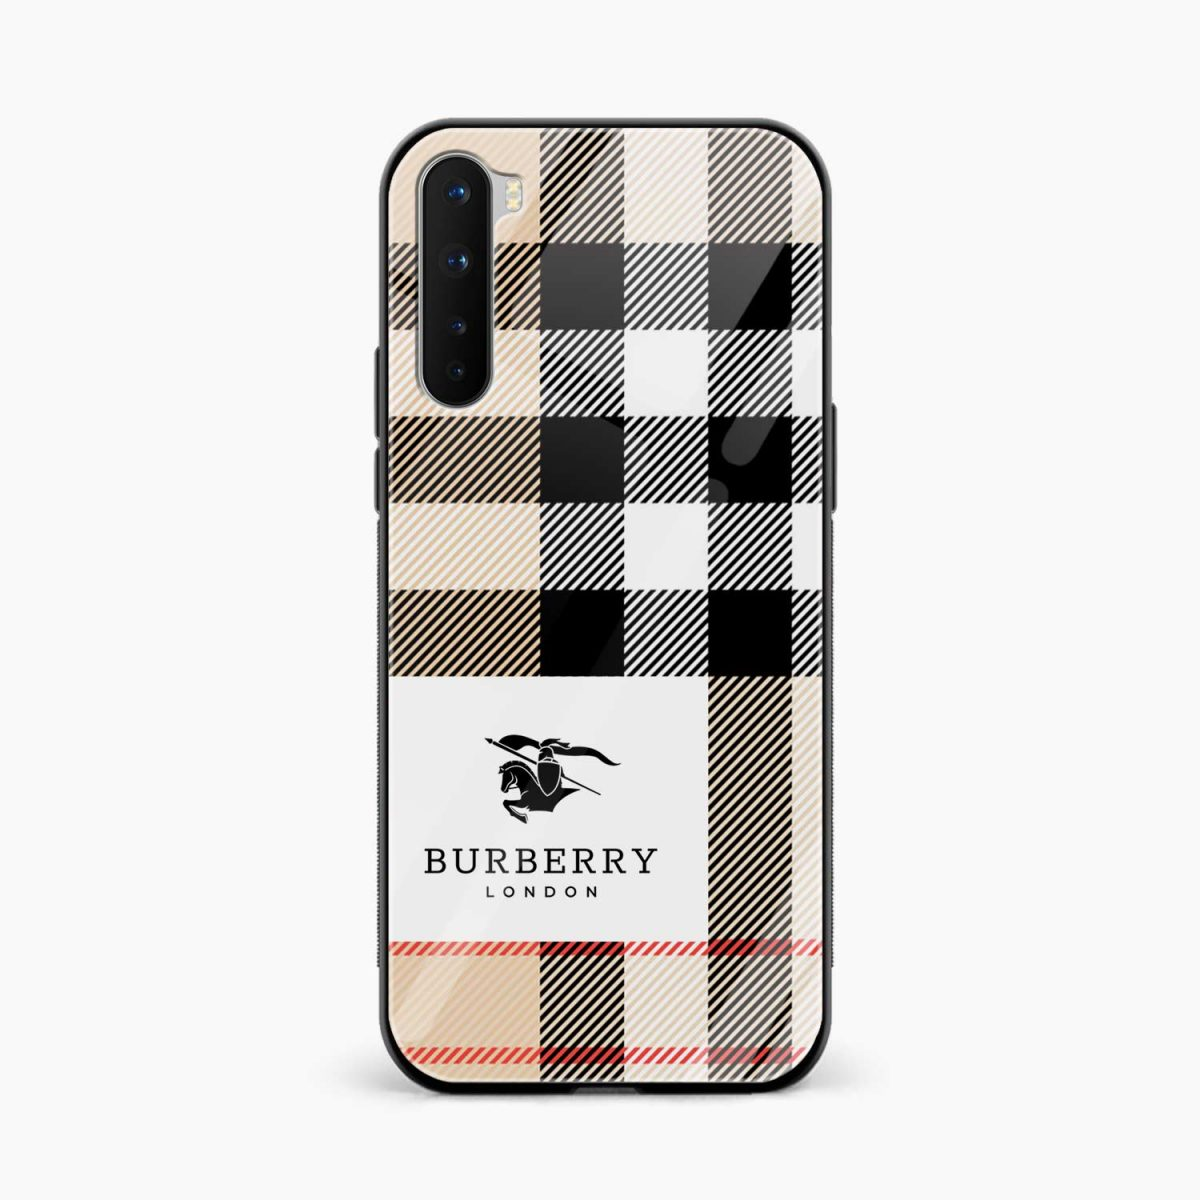 burberry cross lines pattern front view oneplus nord back cover